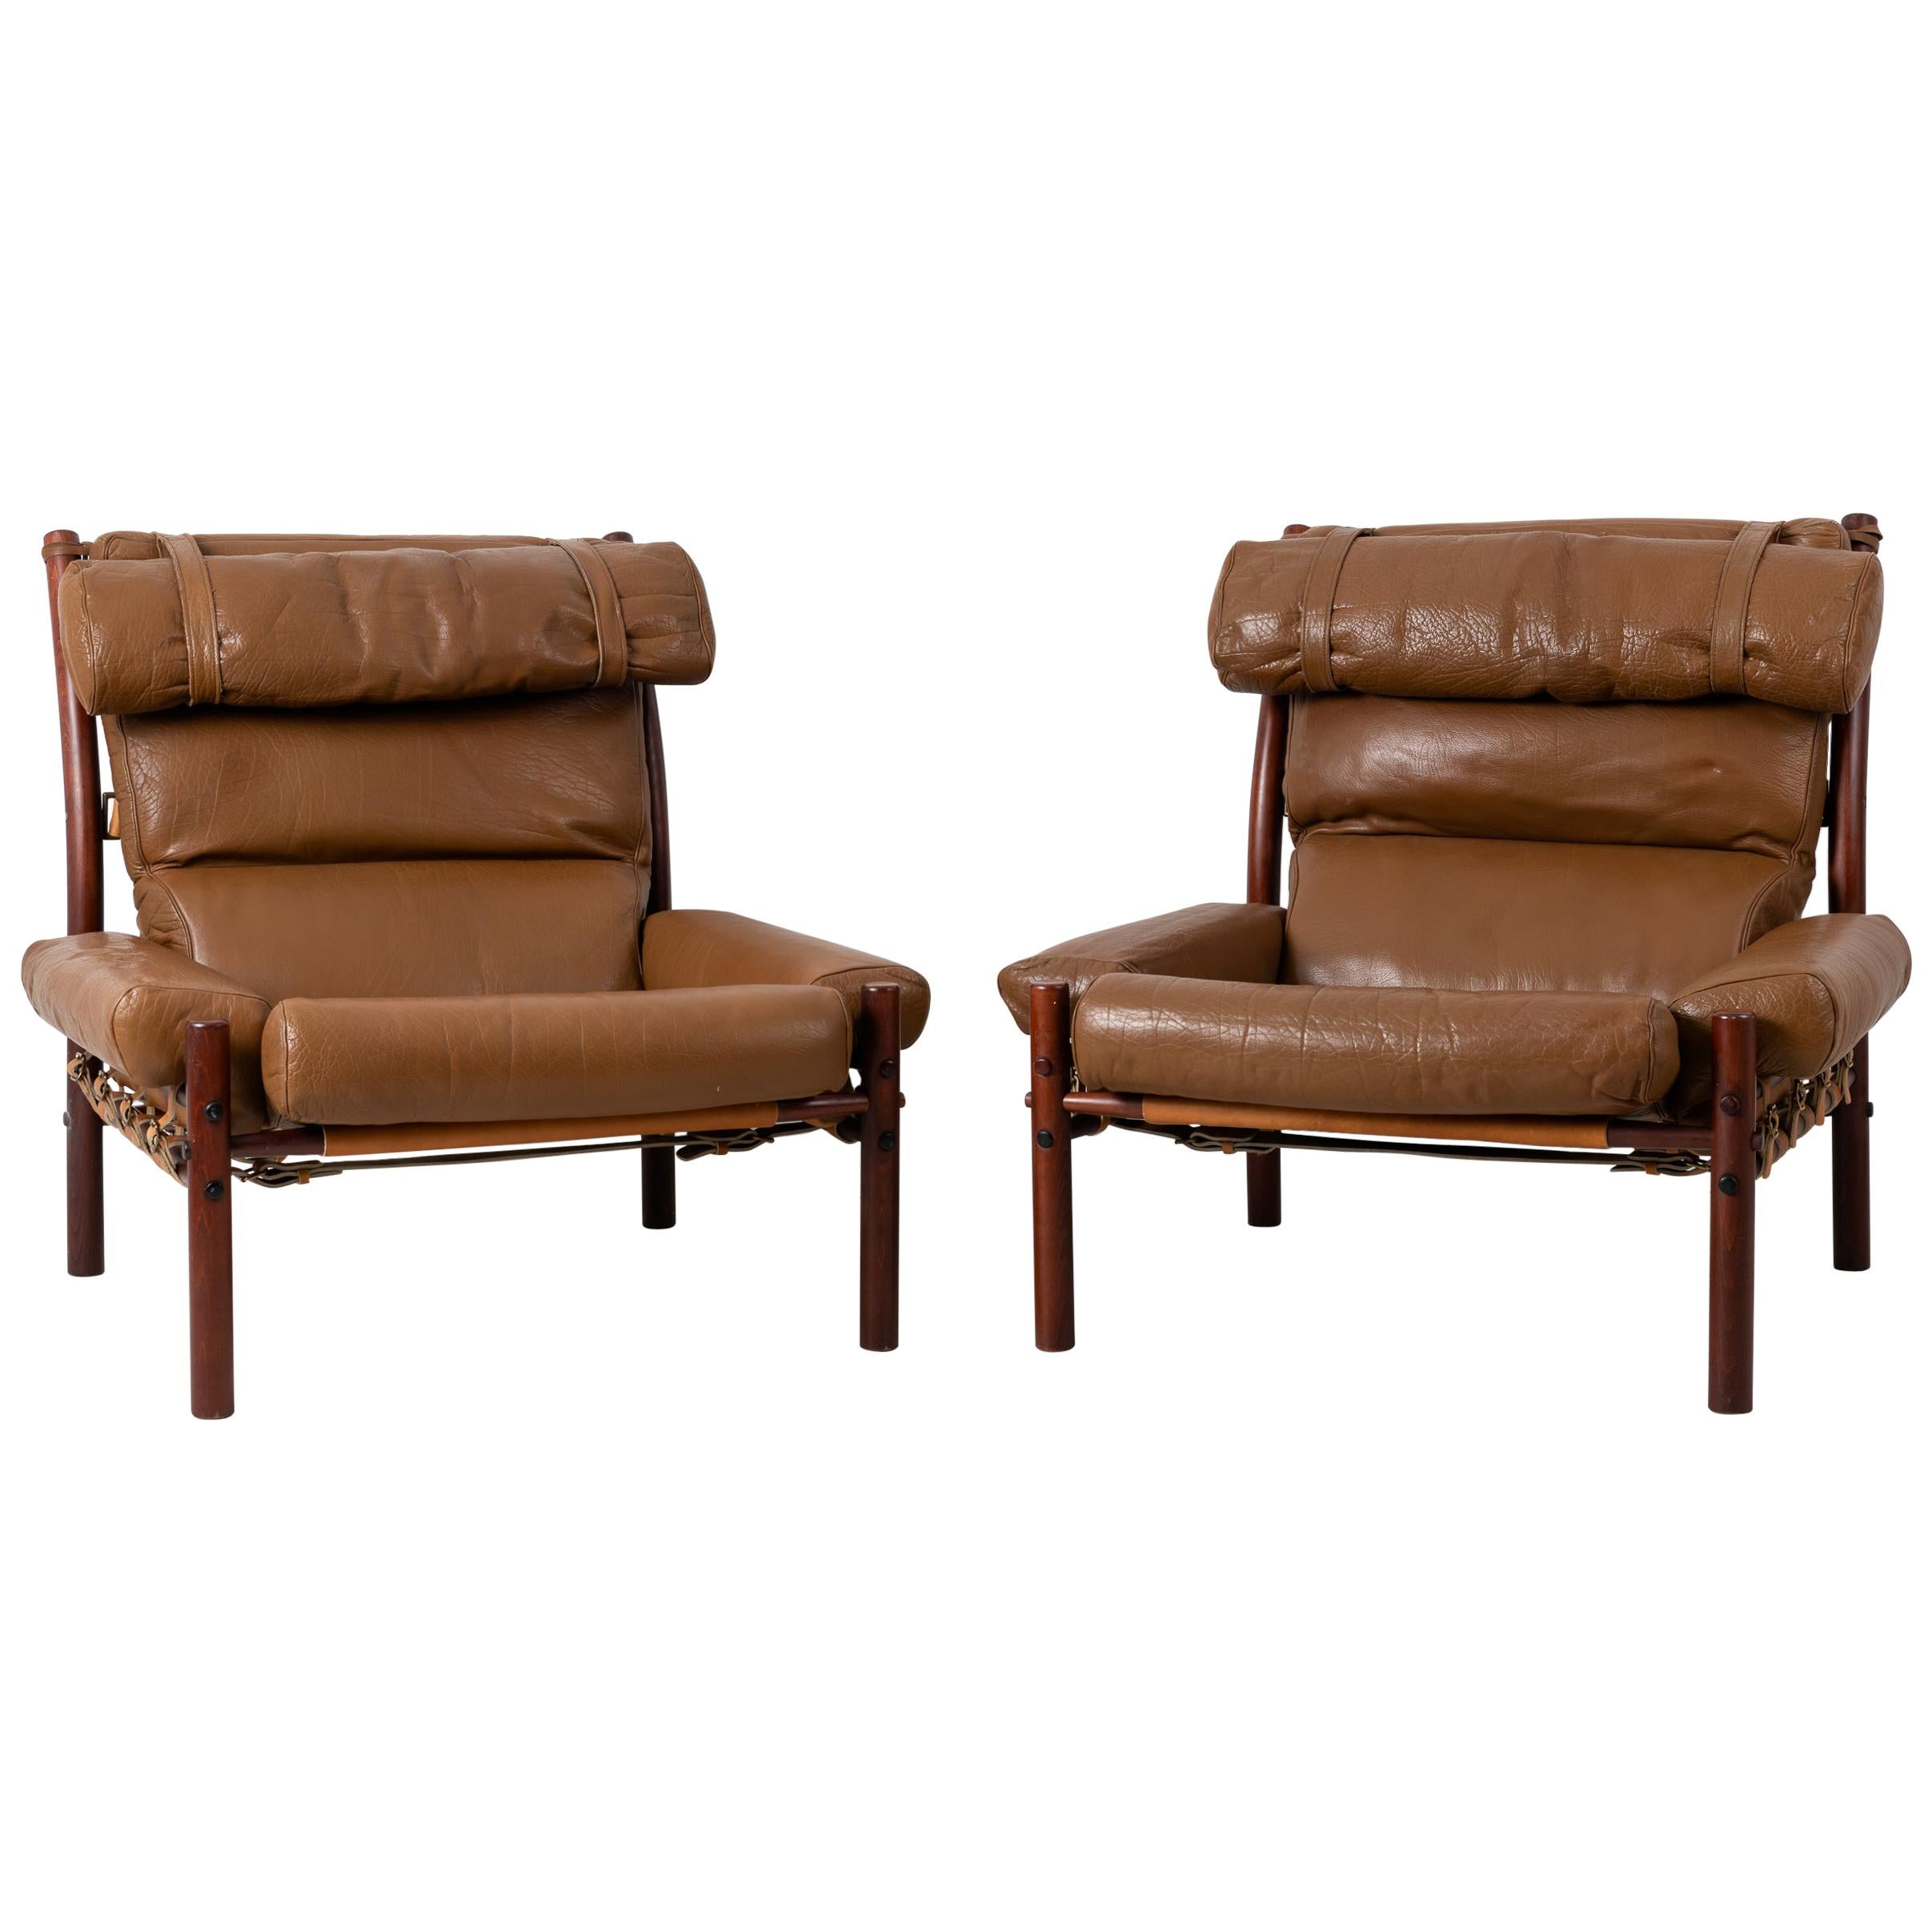 Pair of Inca Armchairs by Arne Norell